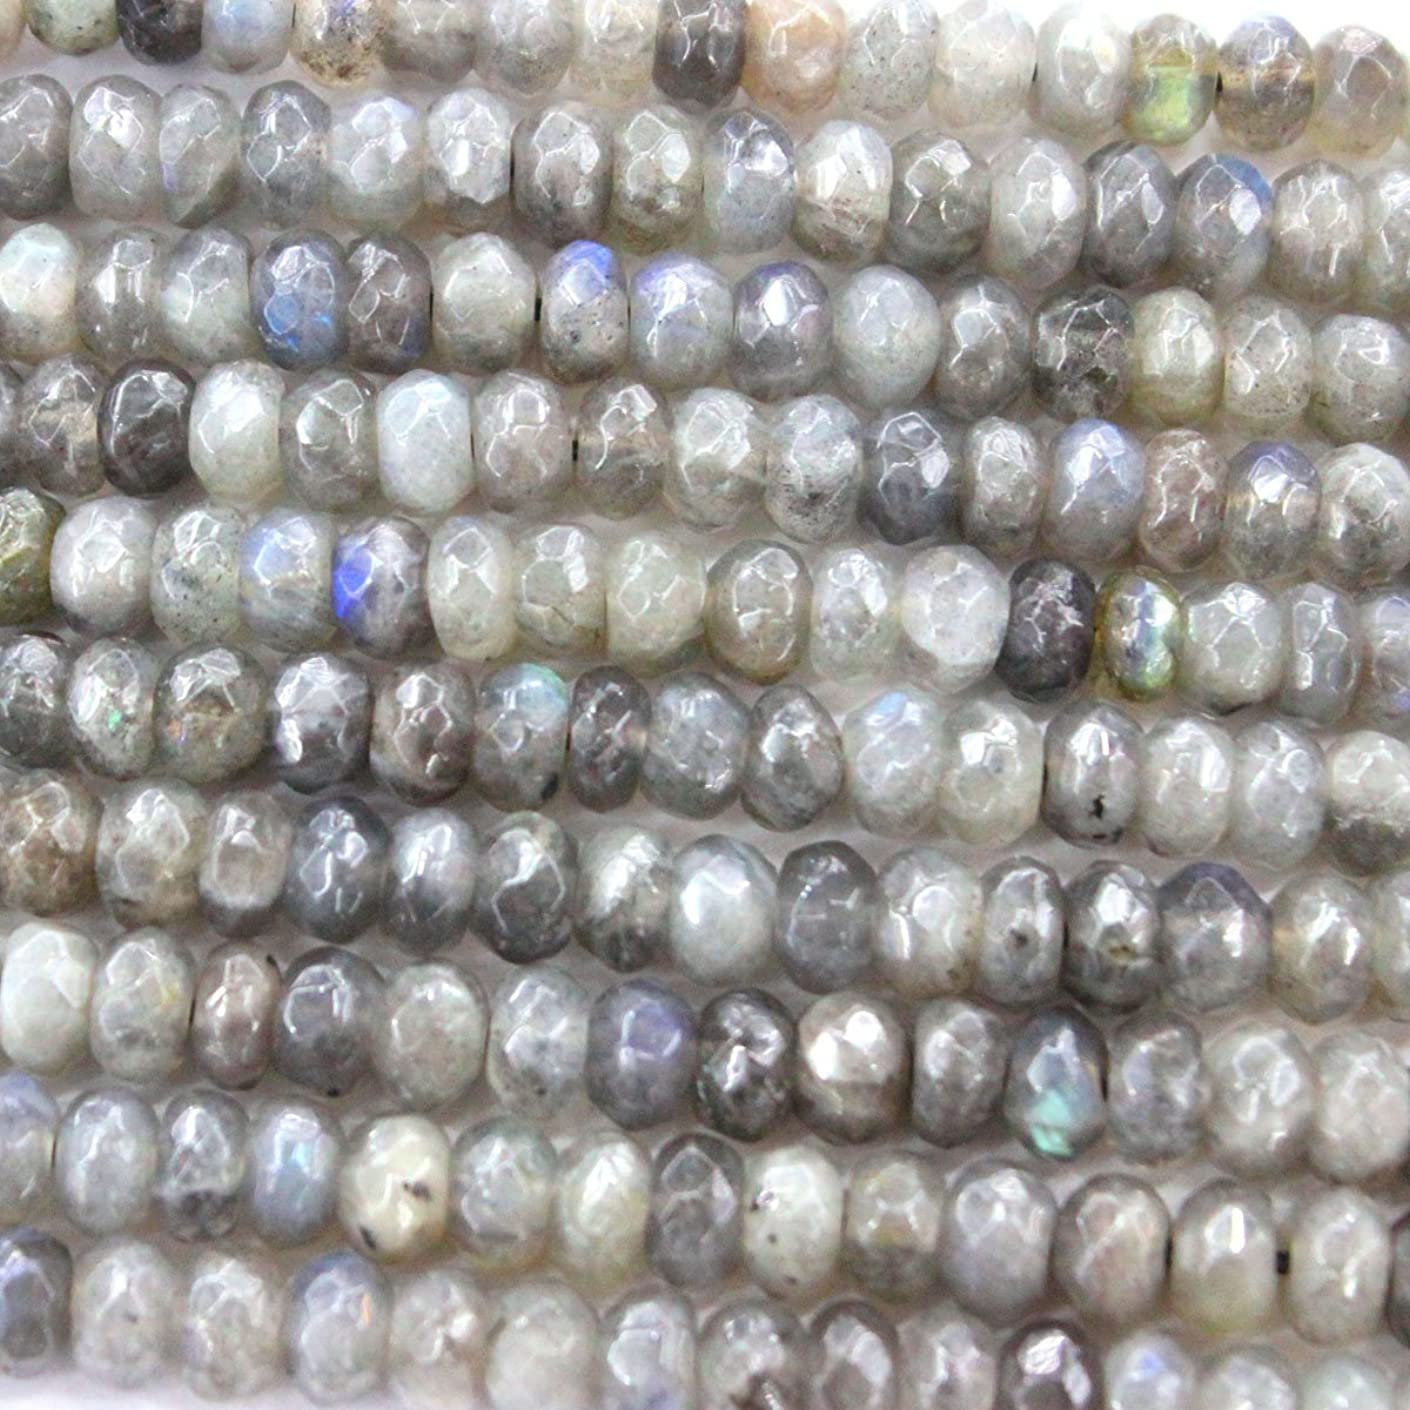 Faceted Natural Labradorite Rondelle Findings Jewerlry Making Gemstone Beads (5×8mm)